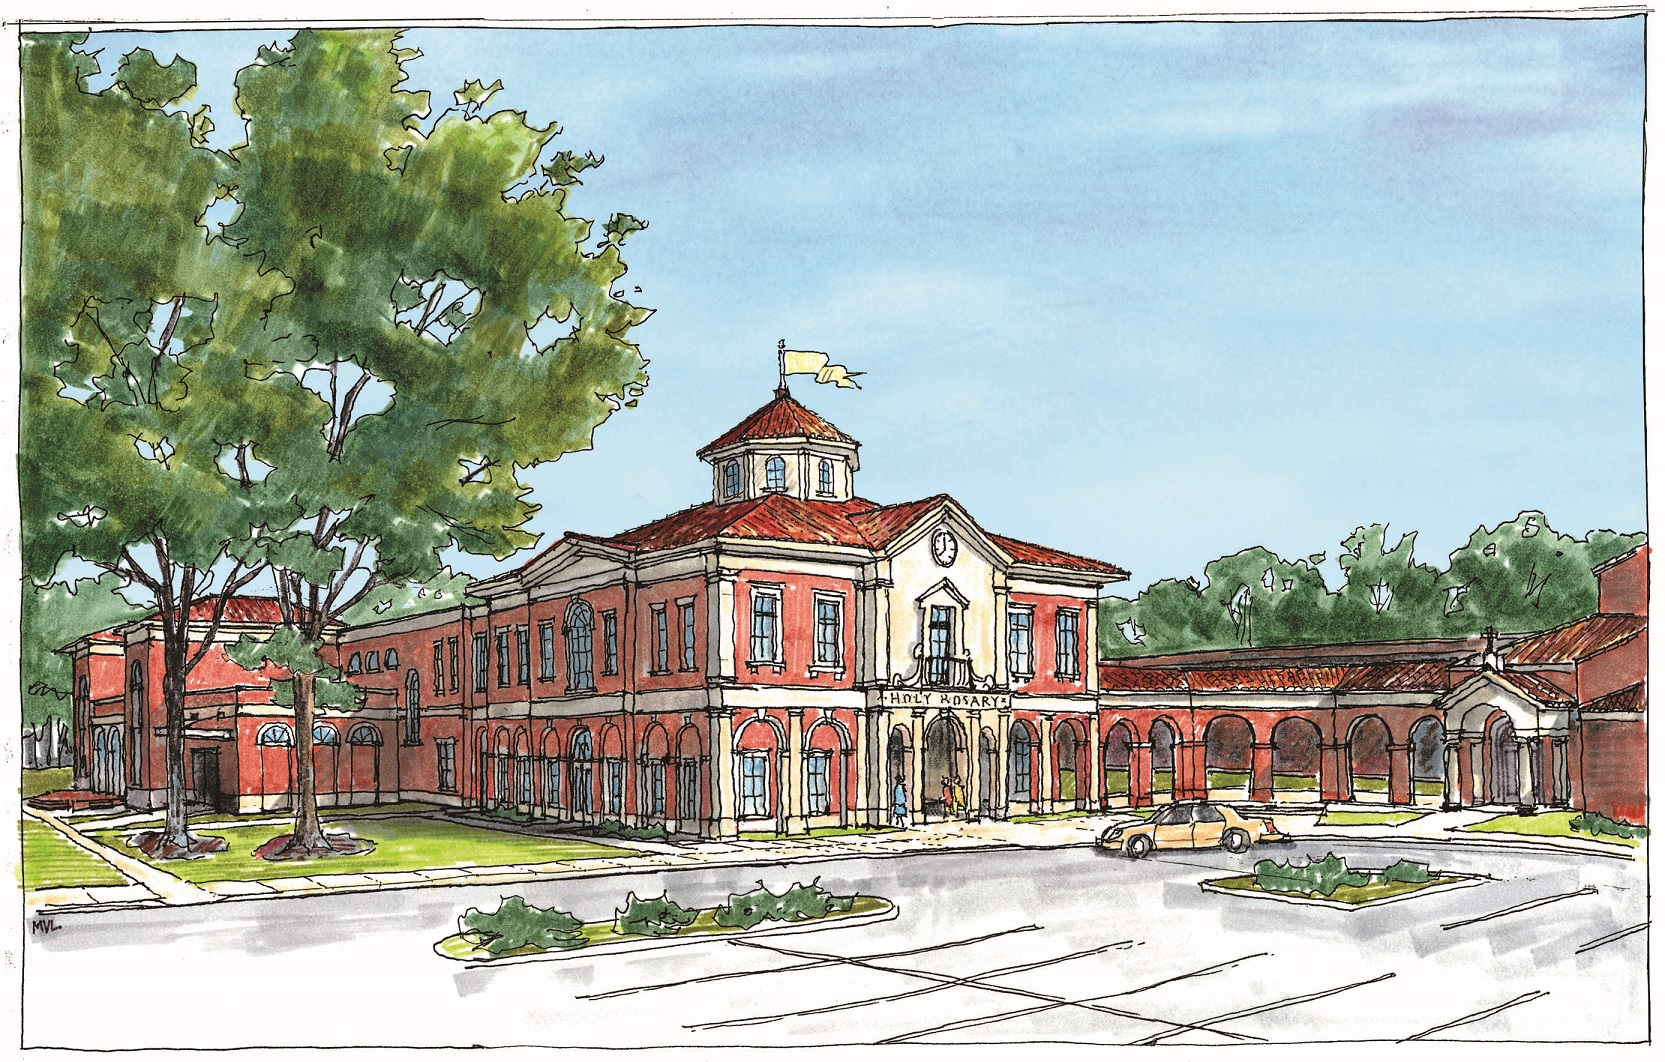 PERSPECTIVE RENDERING OF PROPOSED BUILDING